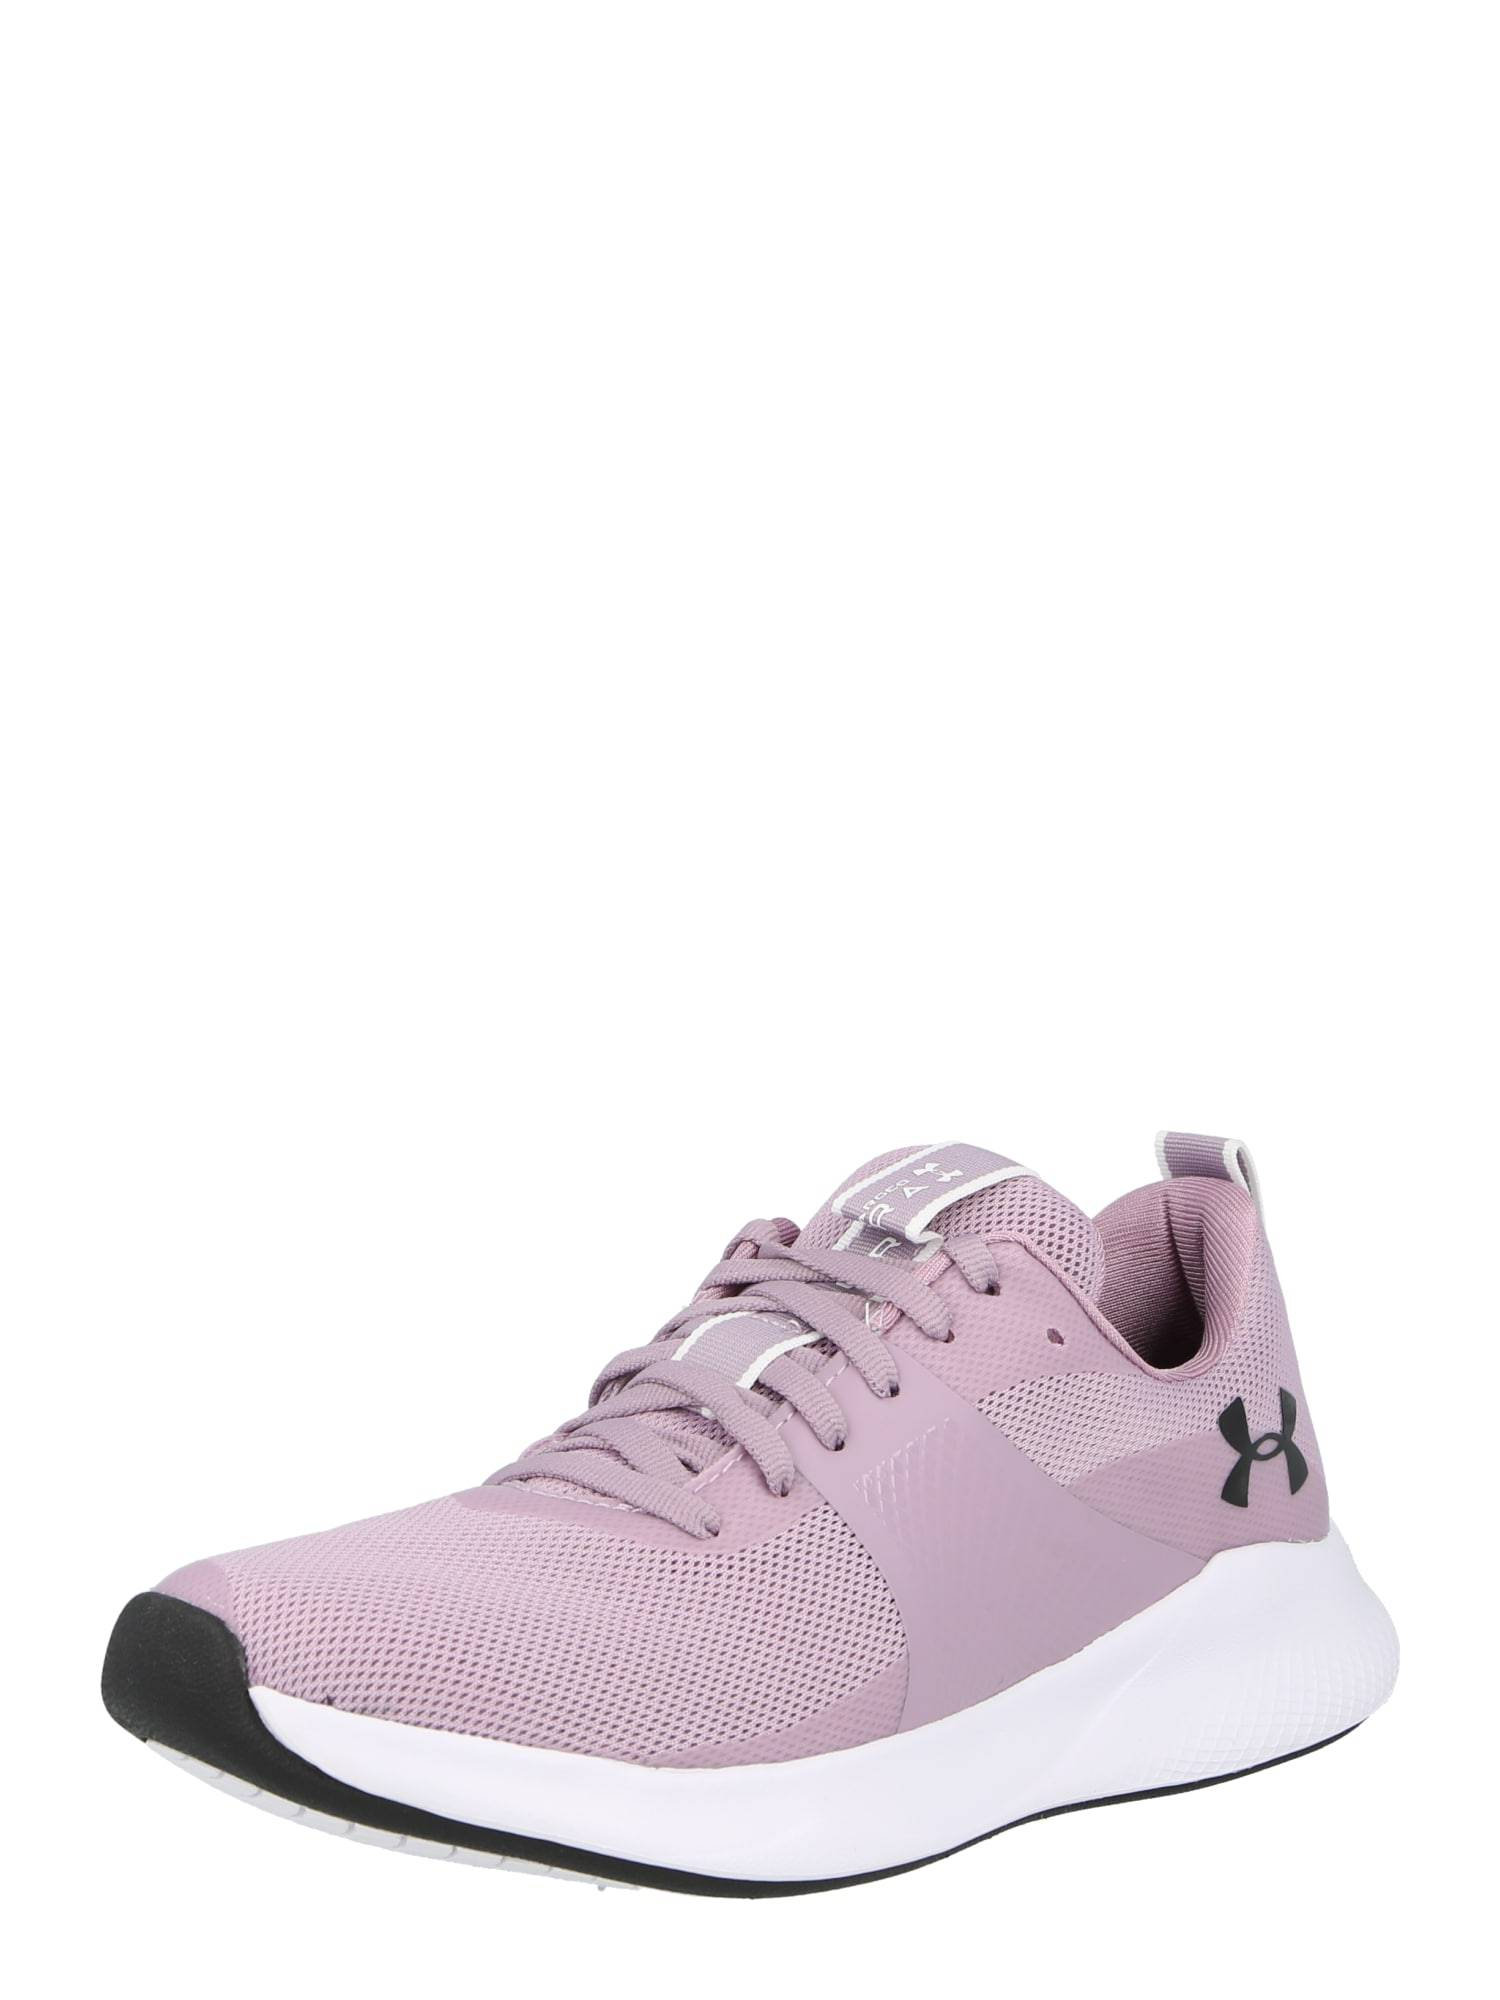 UNDER ARMOUR Chaussure de sport 'Charged Aurora'  - Rose - Taille: 10 - female